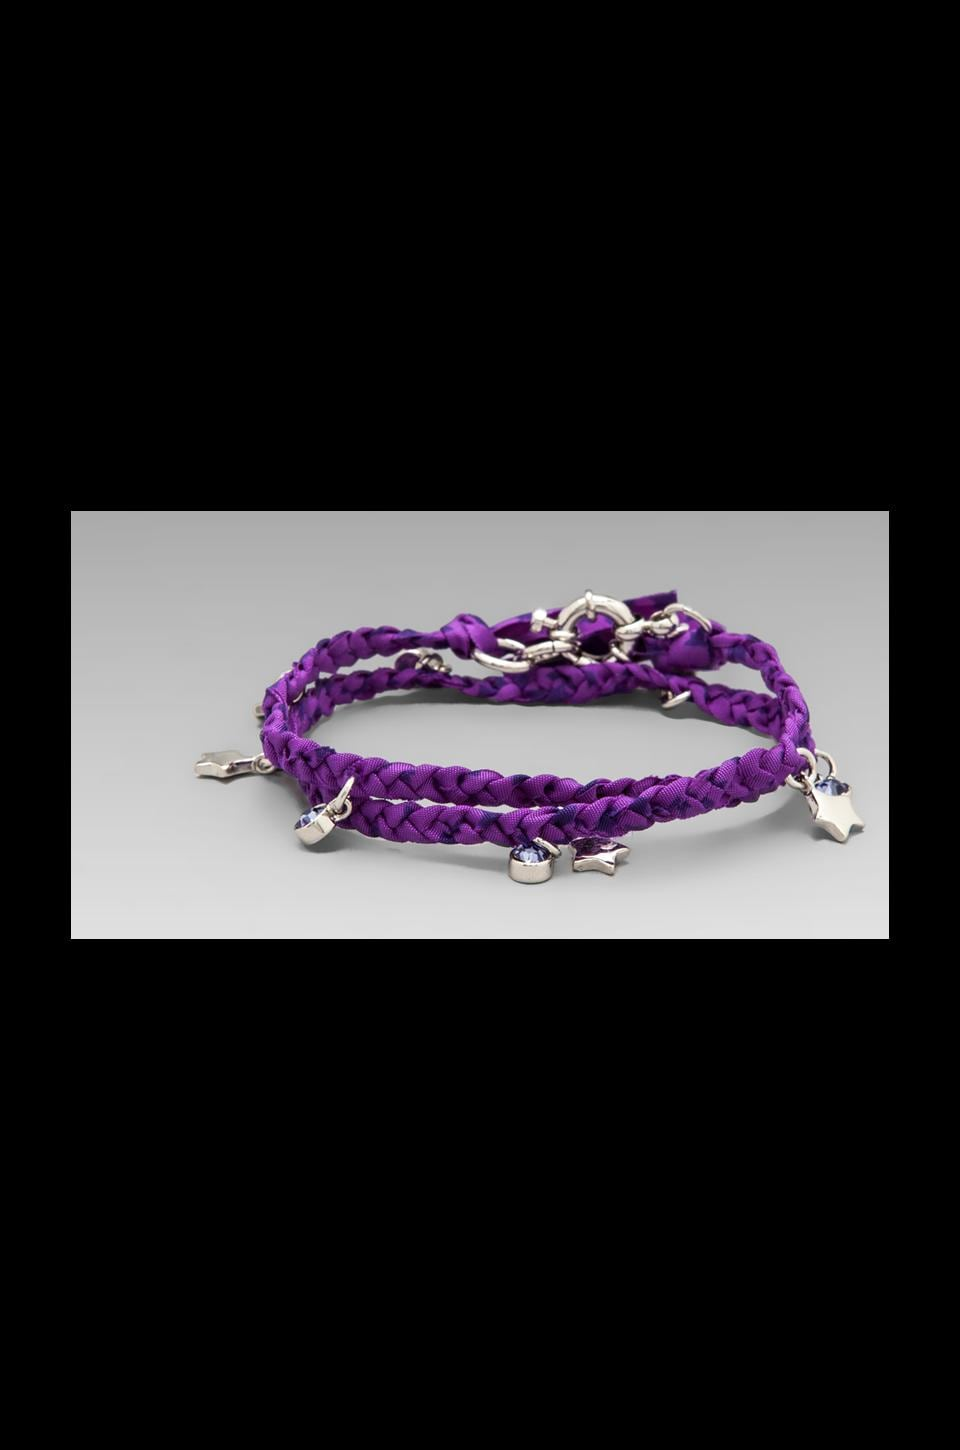 Marc by Marc Jacobs Key Items Braided Charm Double Wrap Bracelet Cosmic Purple Multi (Argento)